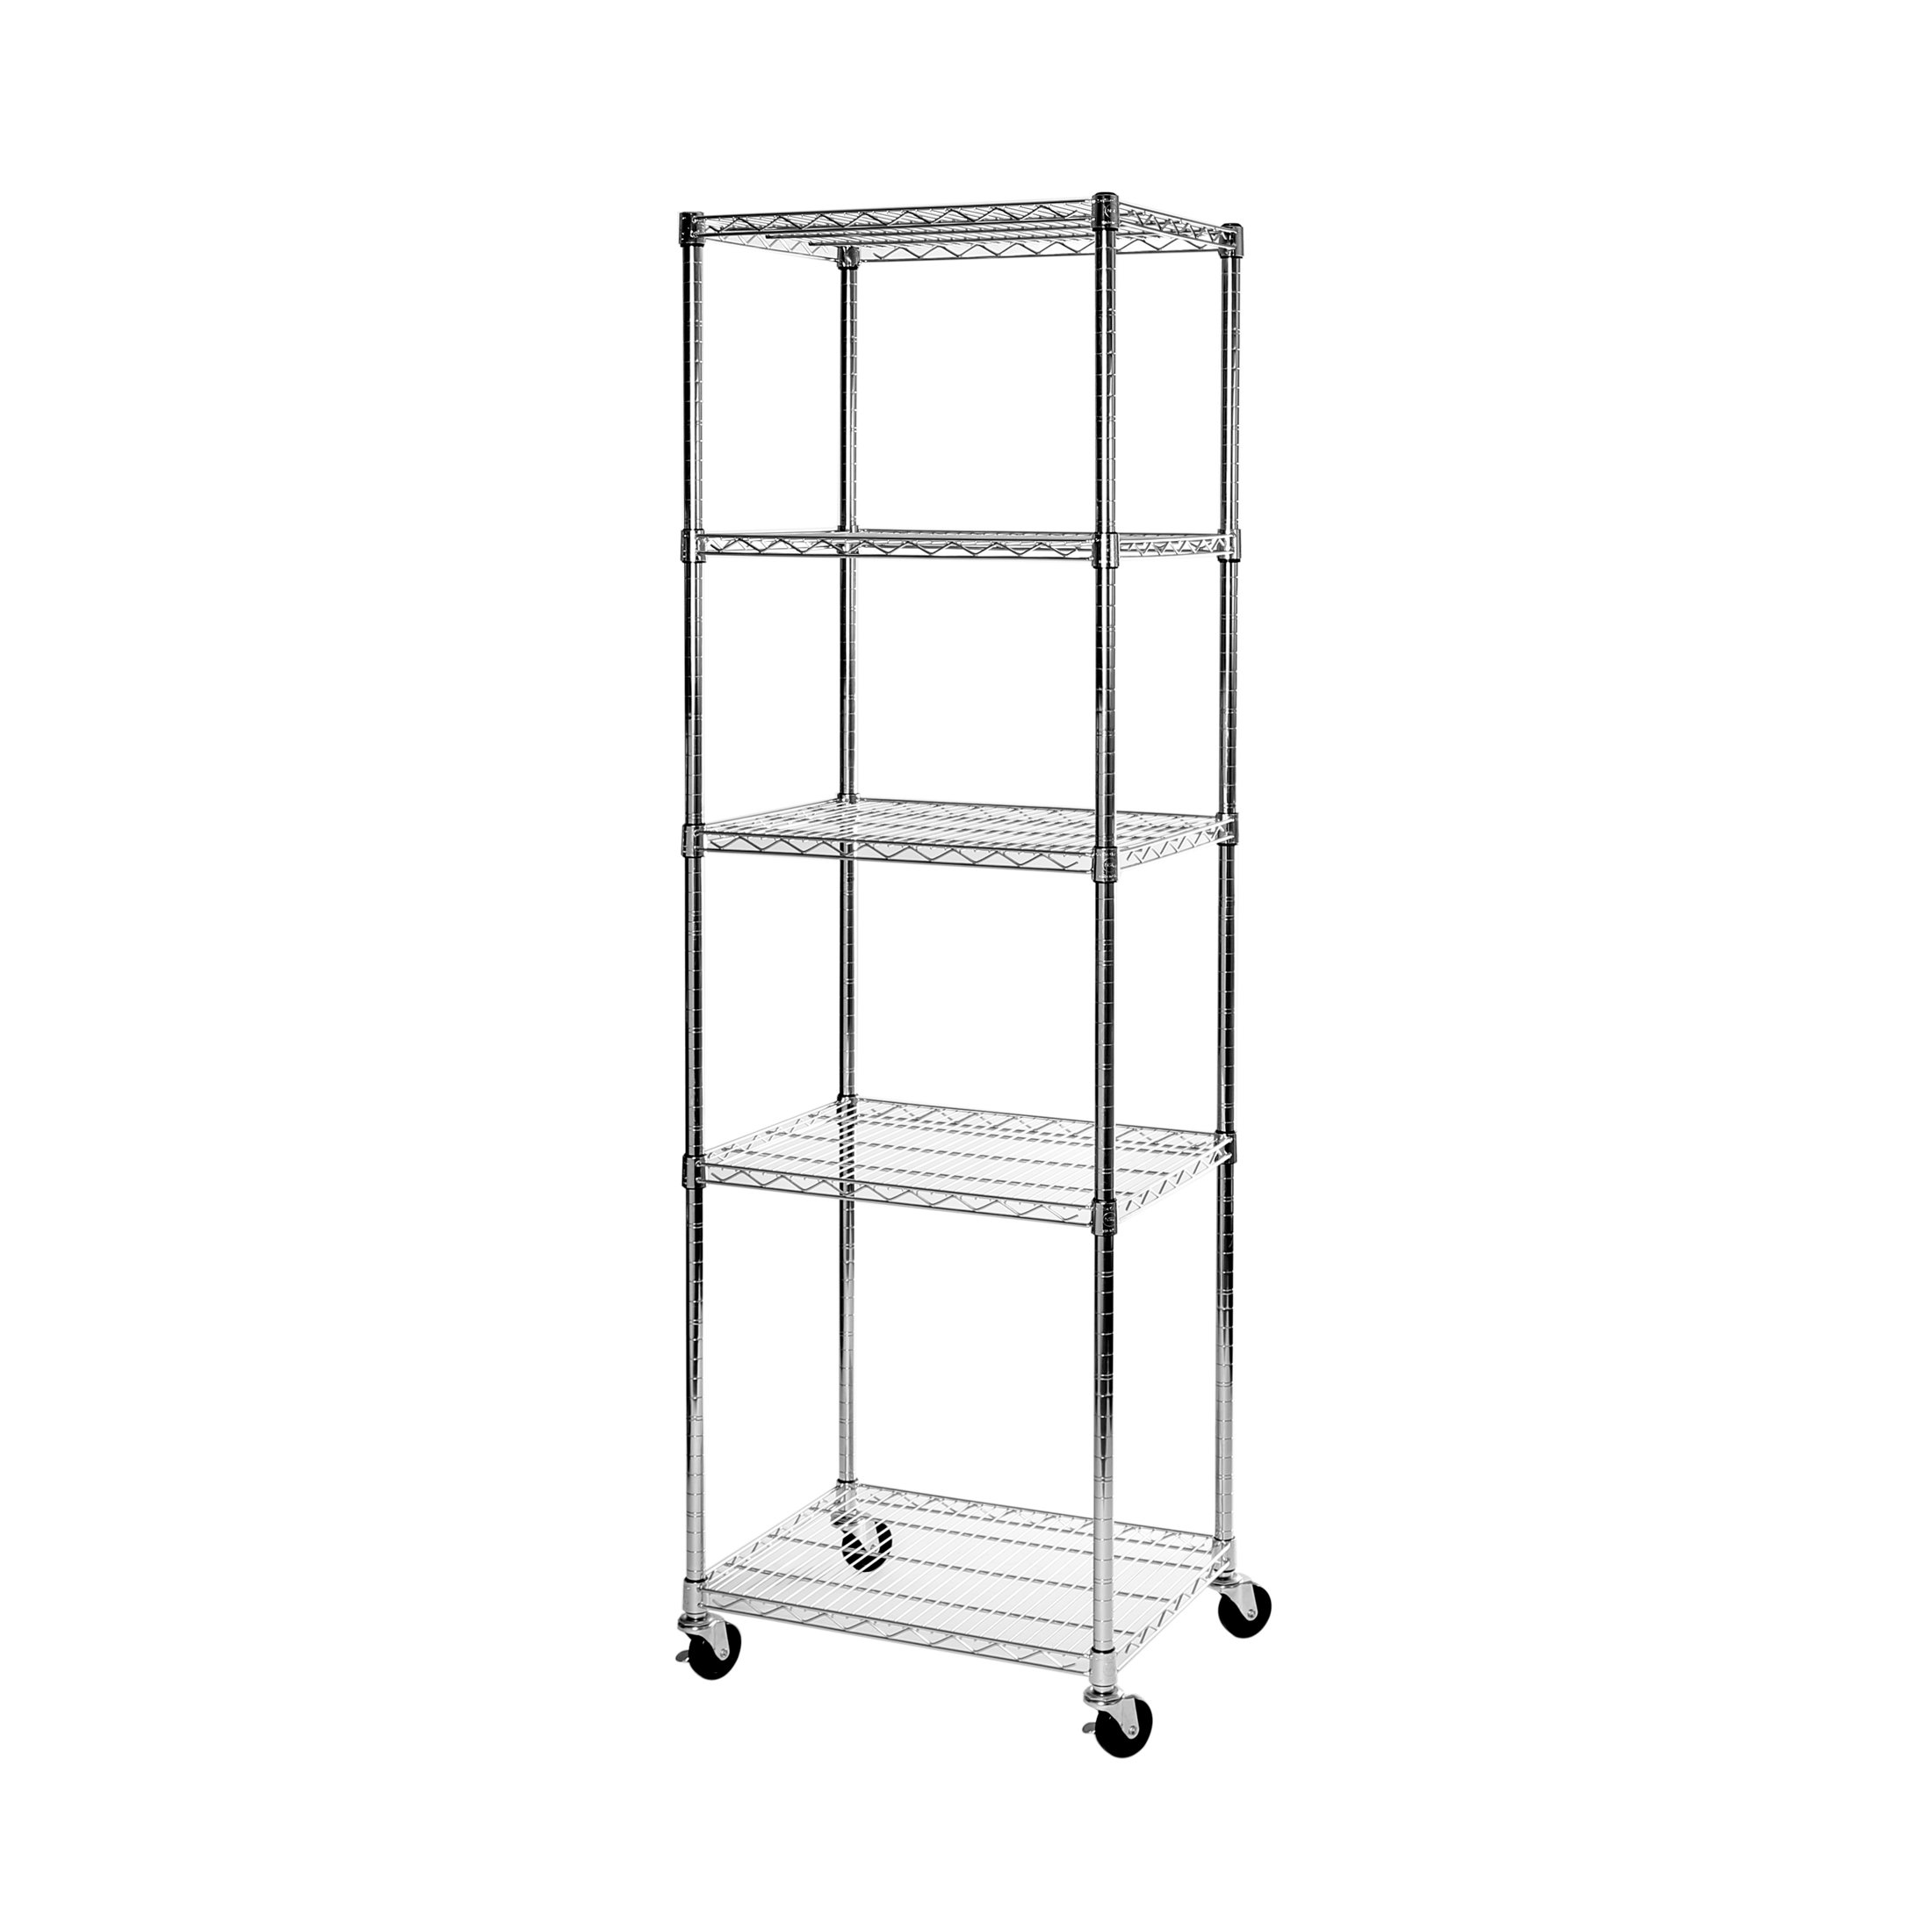 Seville Classics UltraDurable Commercial-Grade 5-Tier Steel Wire Shelving with Wheels, 24'' W x 18'' D x 72'' H